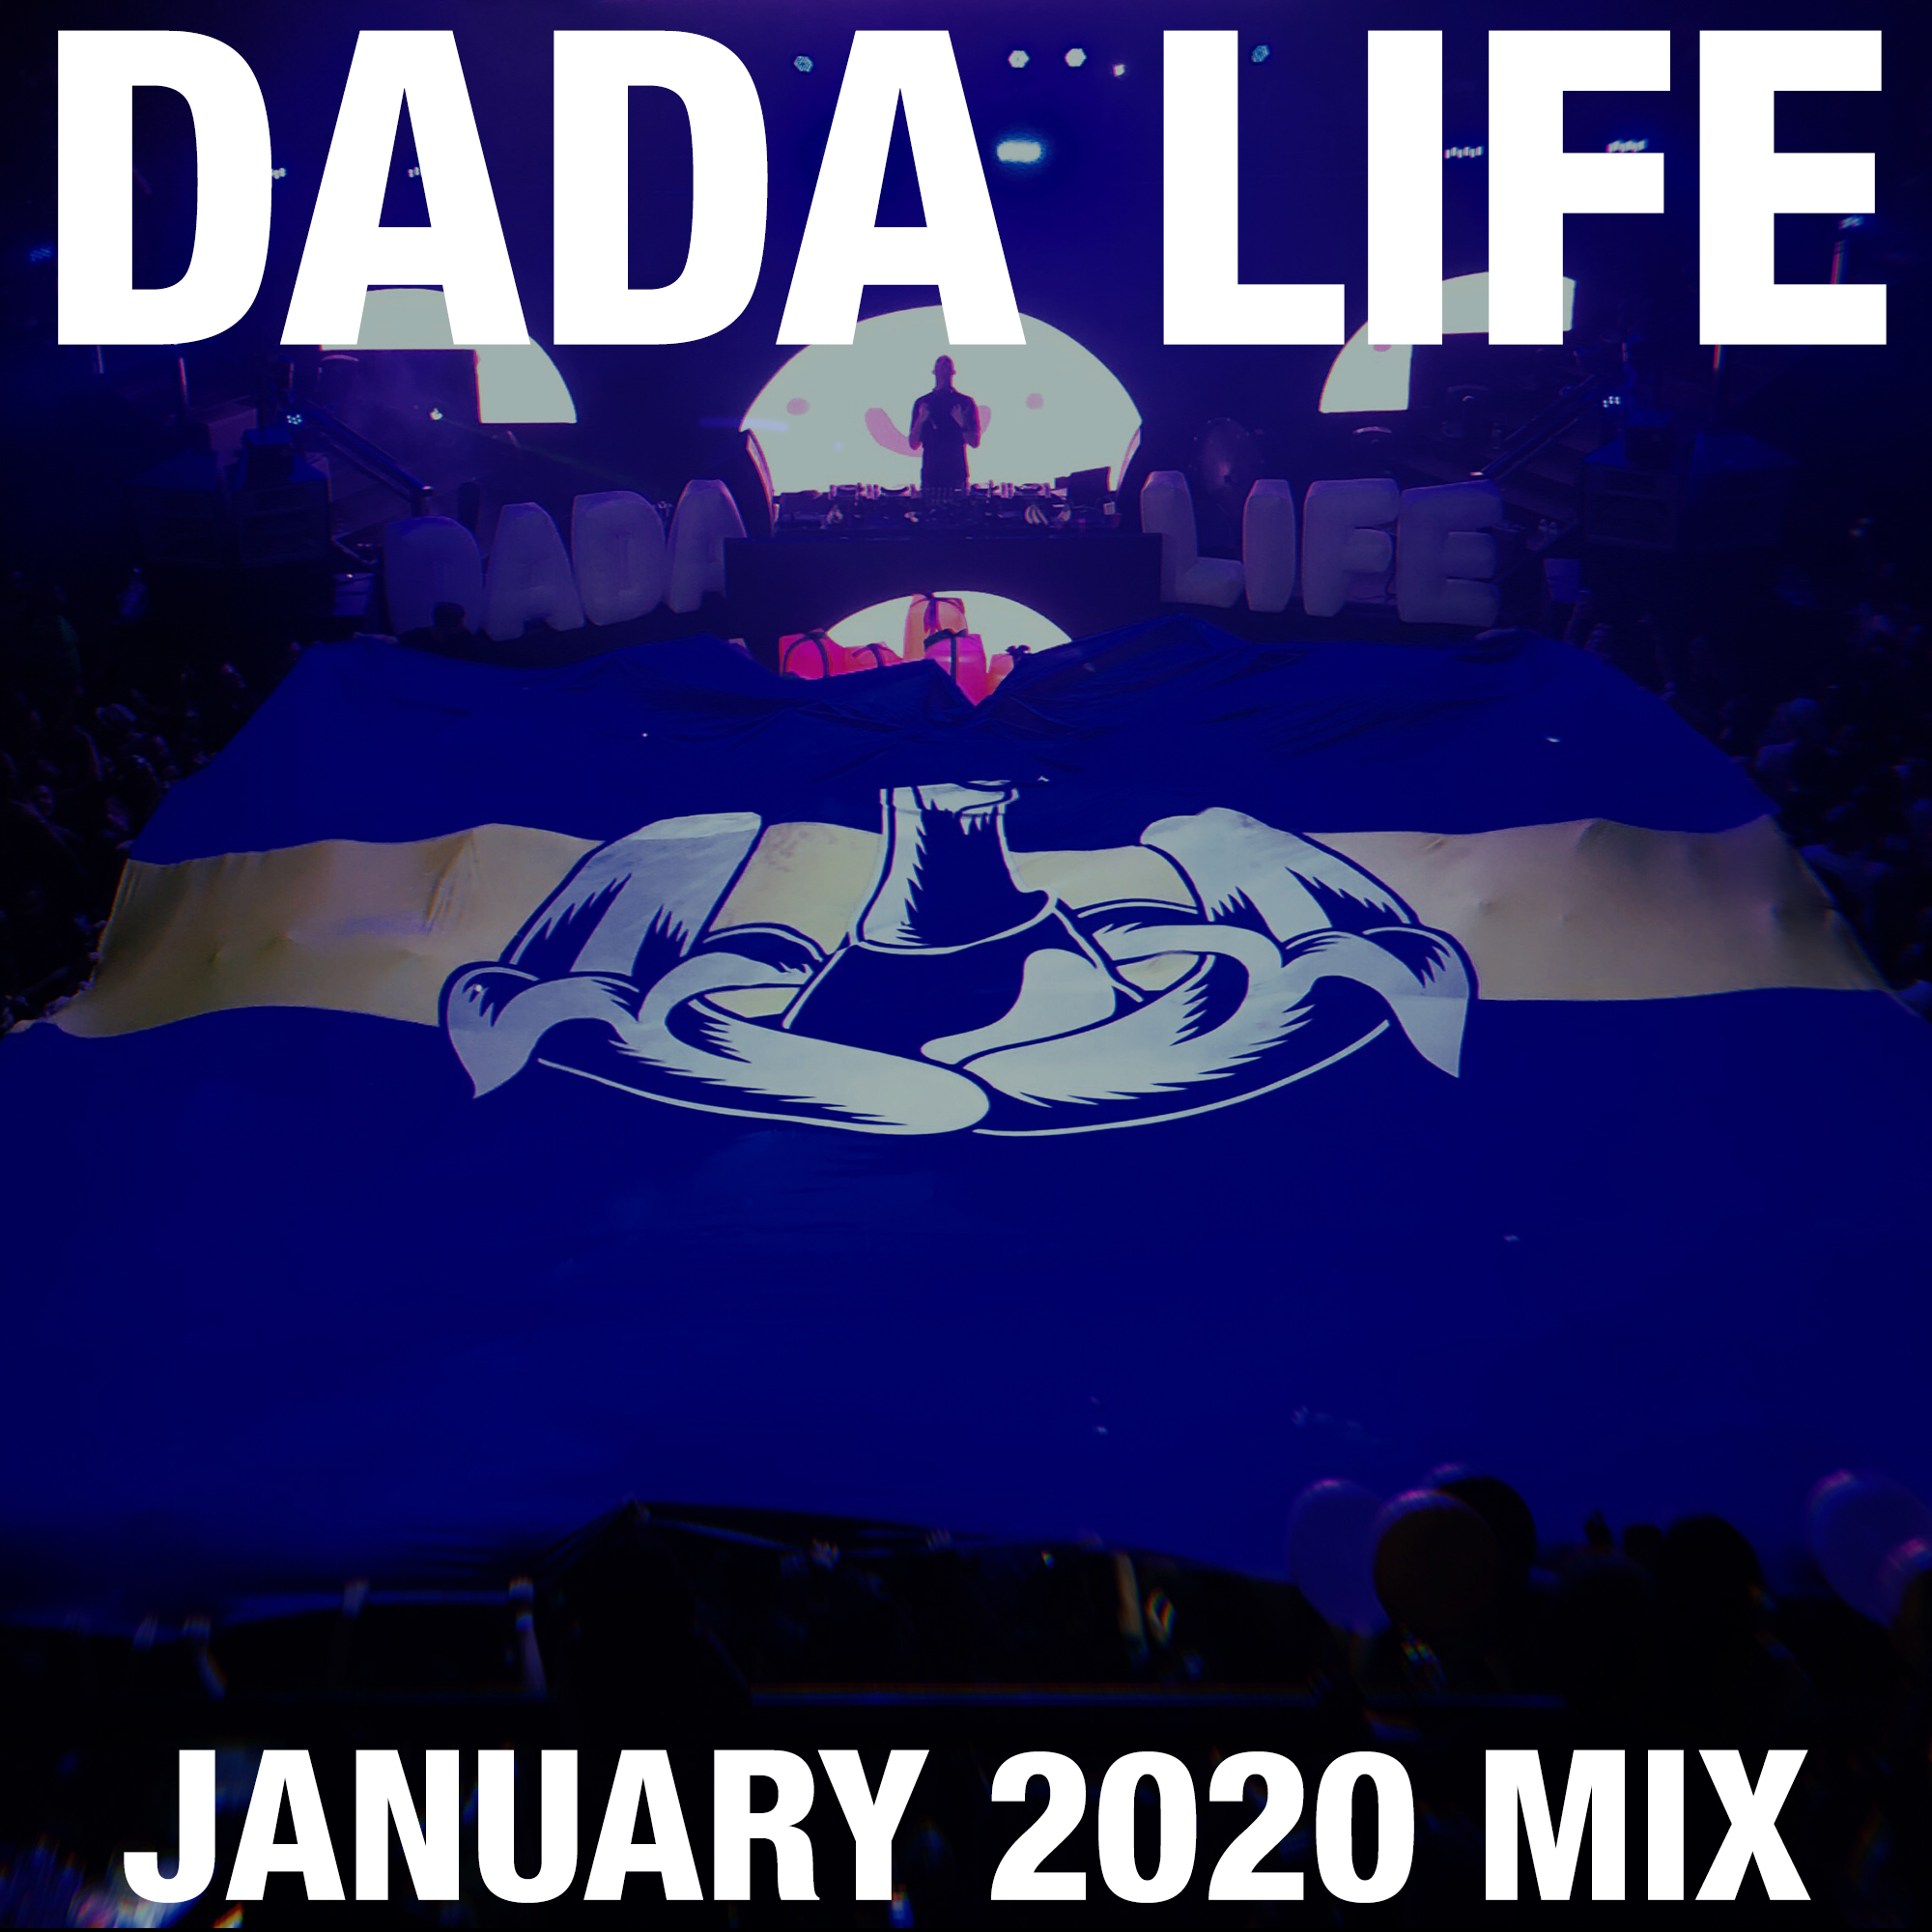 Dada Land January 2020 Mix show art